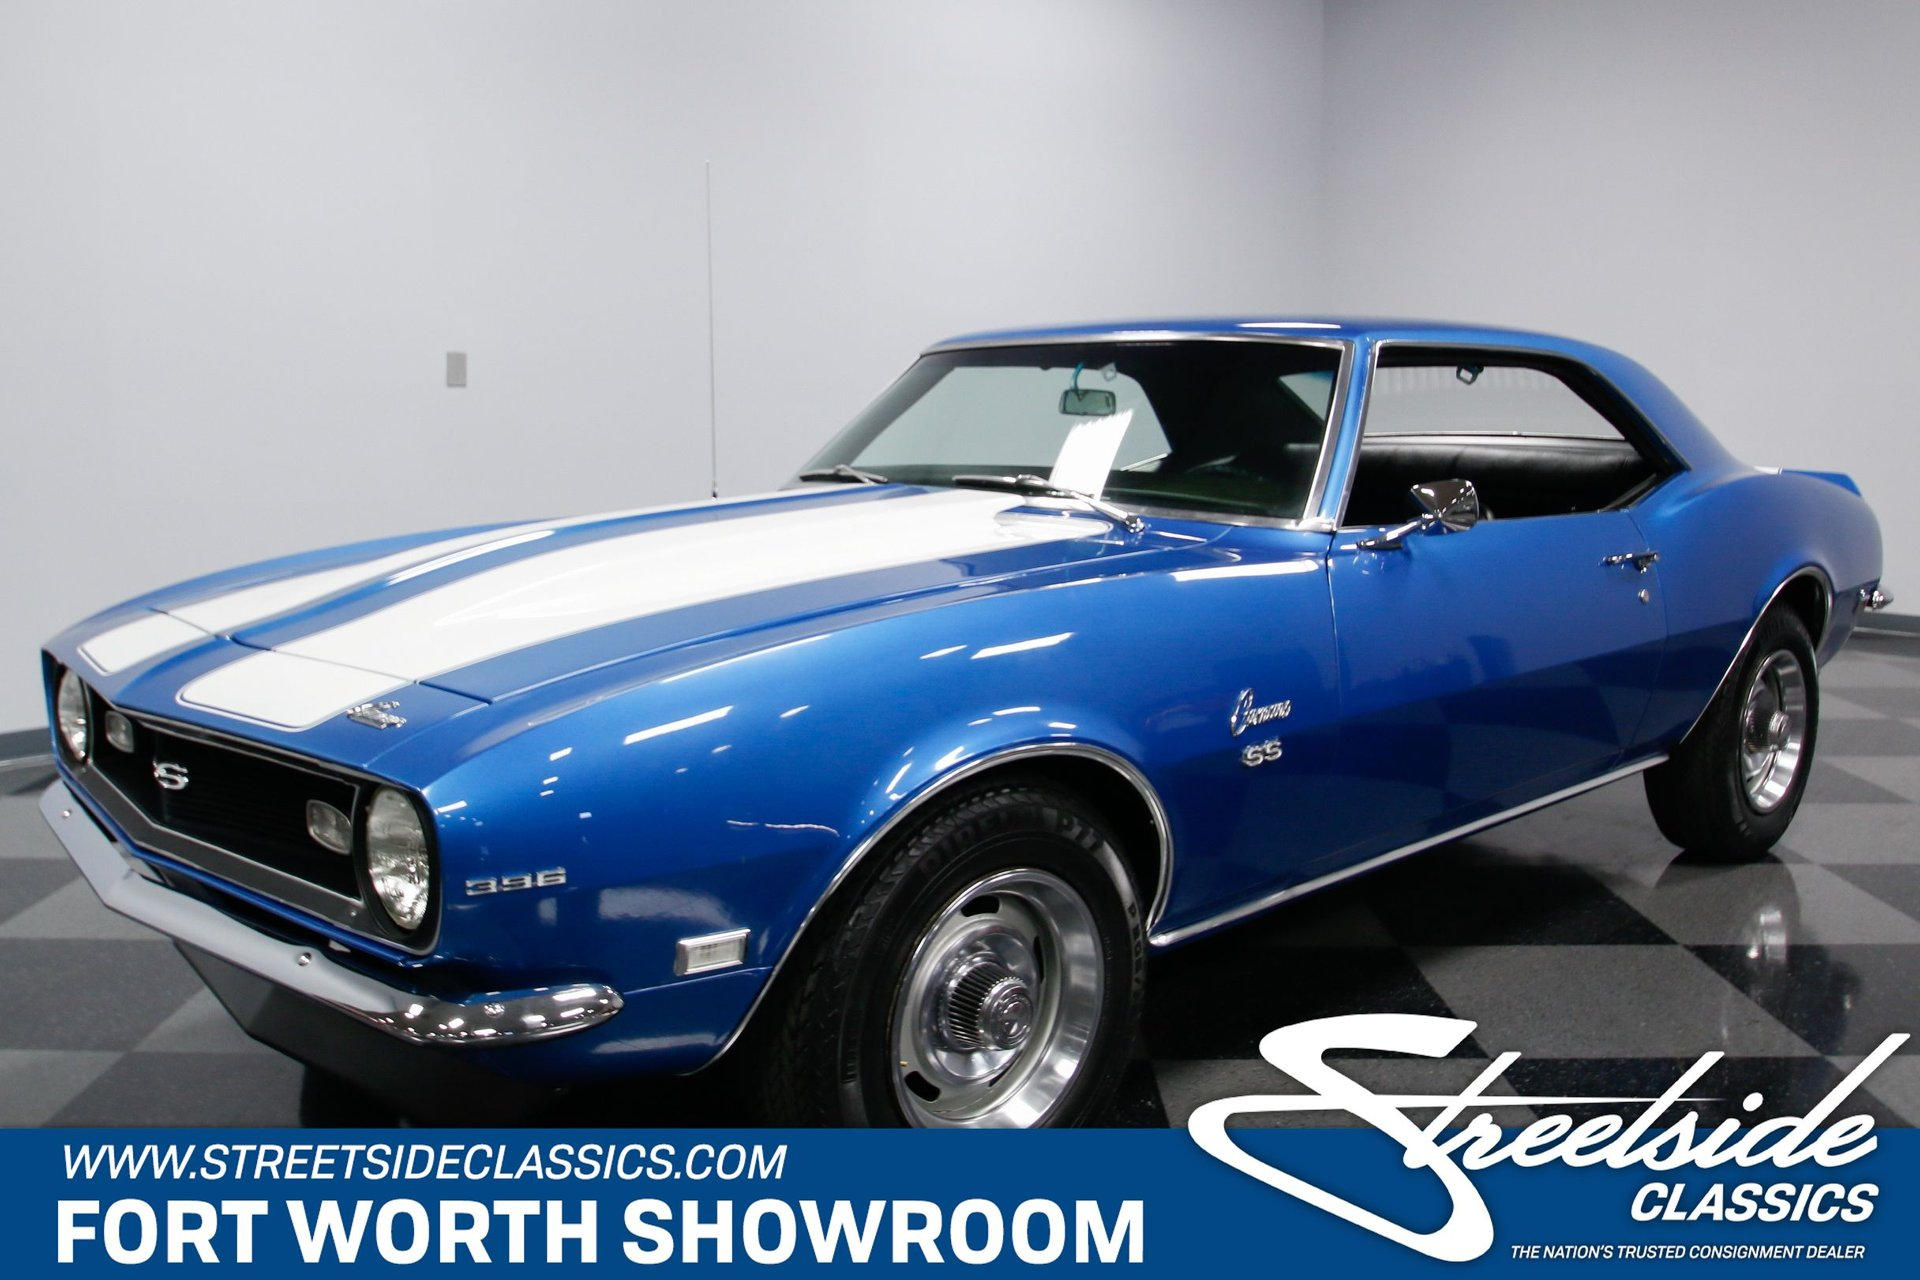 1968 Chevrolet Camaro Ss 454 For Sale 78874 Mcg Blue